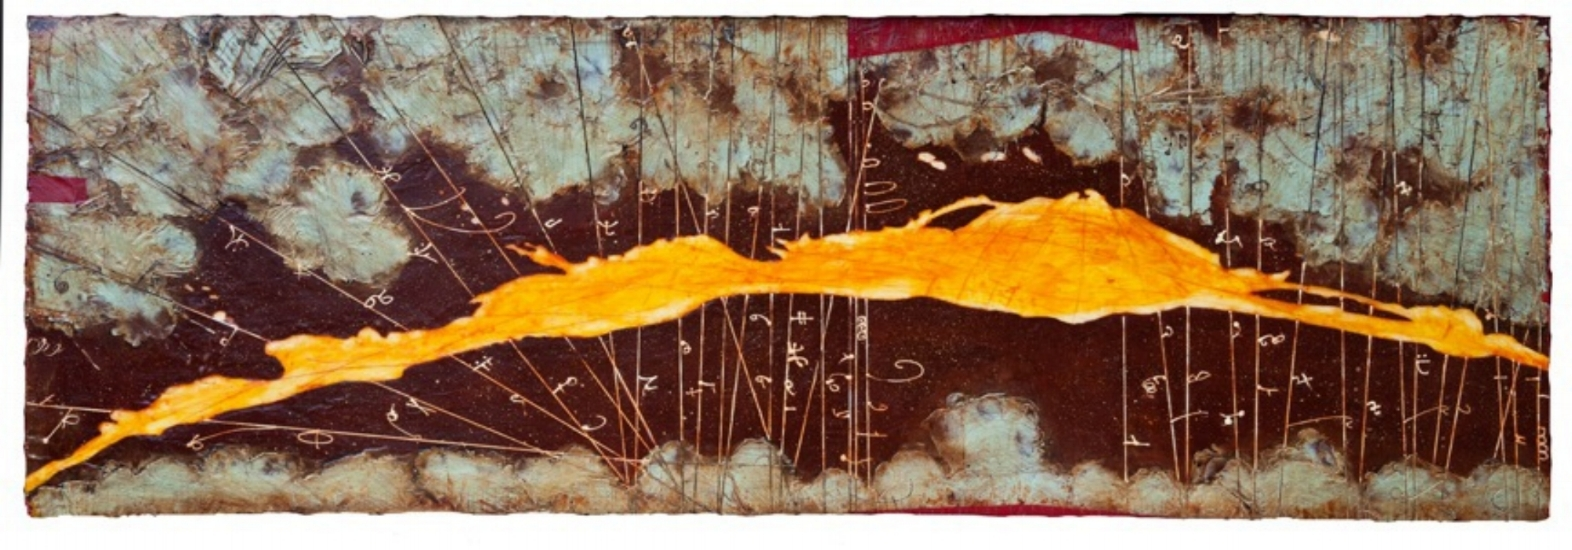 Absolute Horizon I, 2011  encaustic and oil on panel 24 x 70 inches  Private Collection